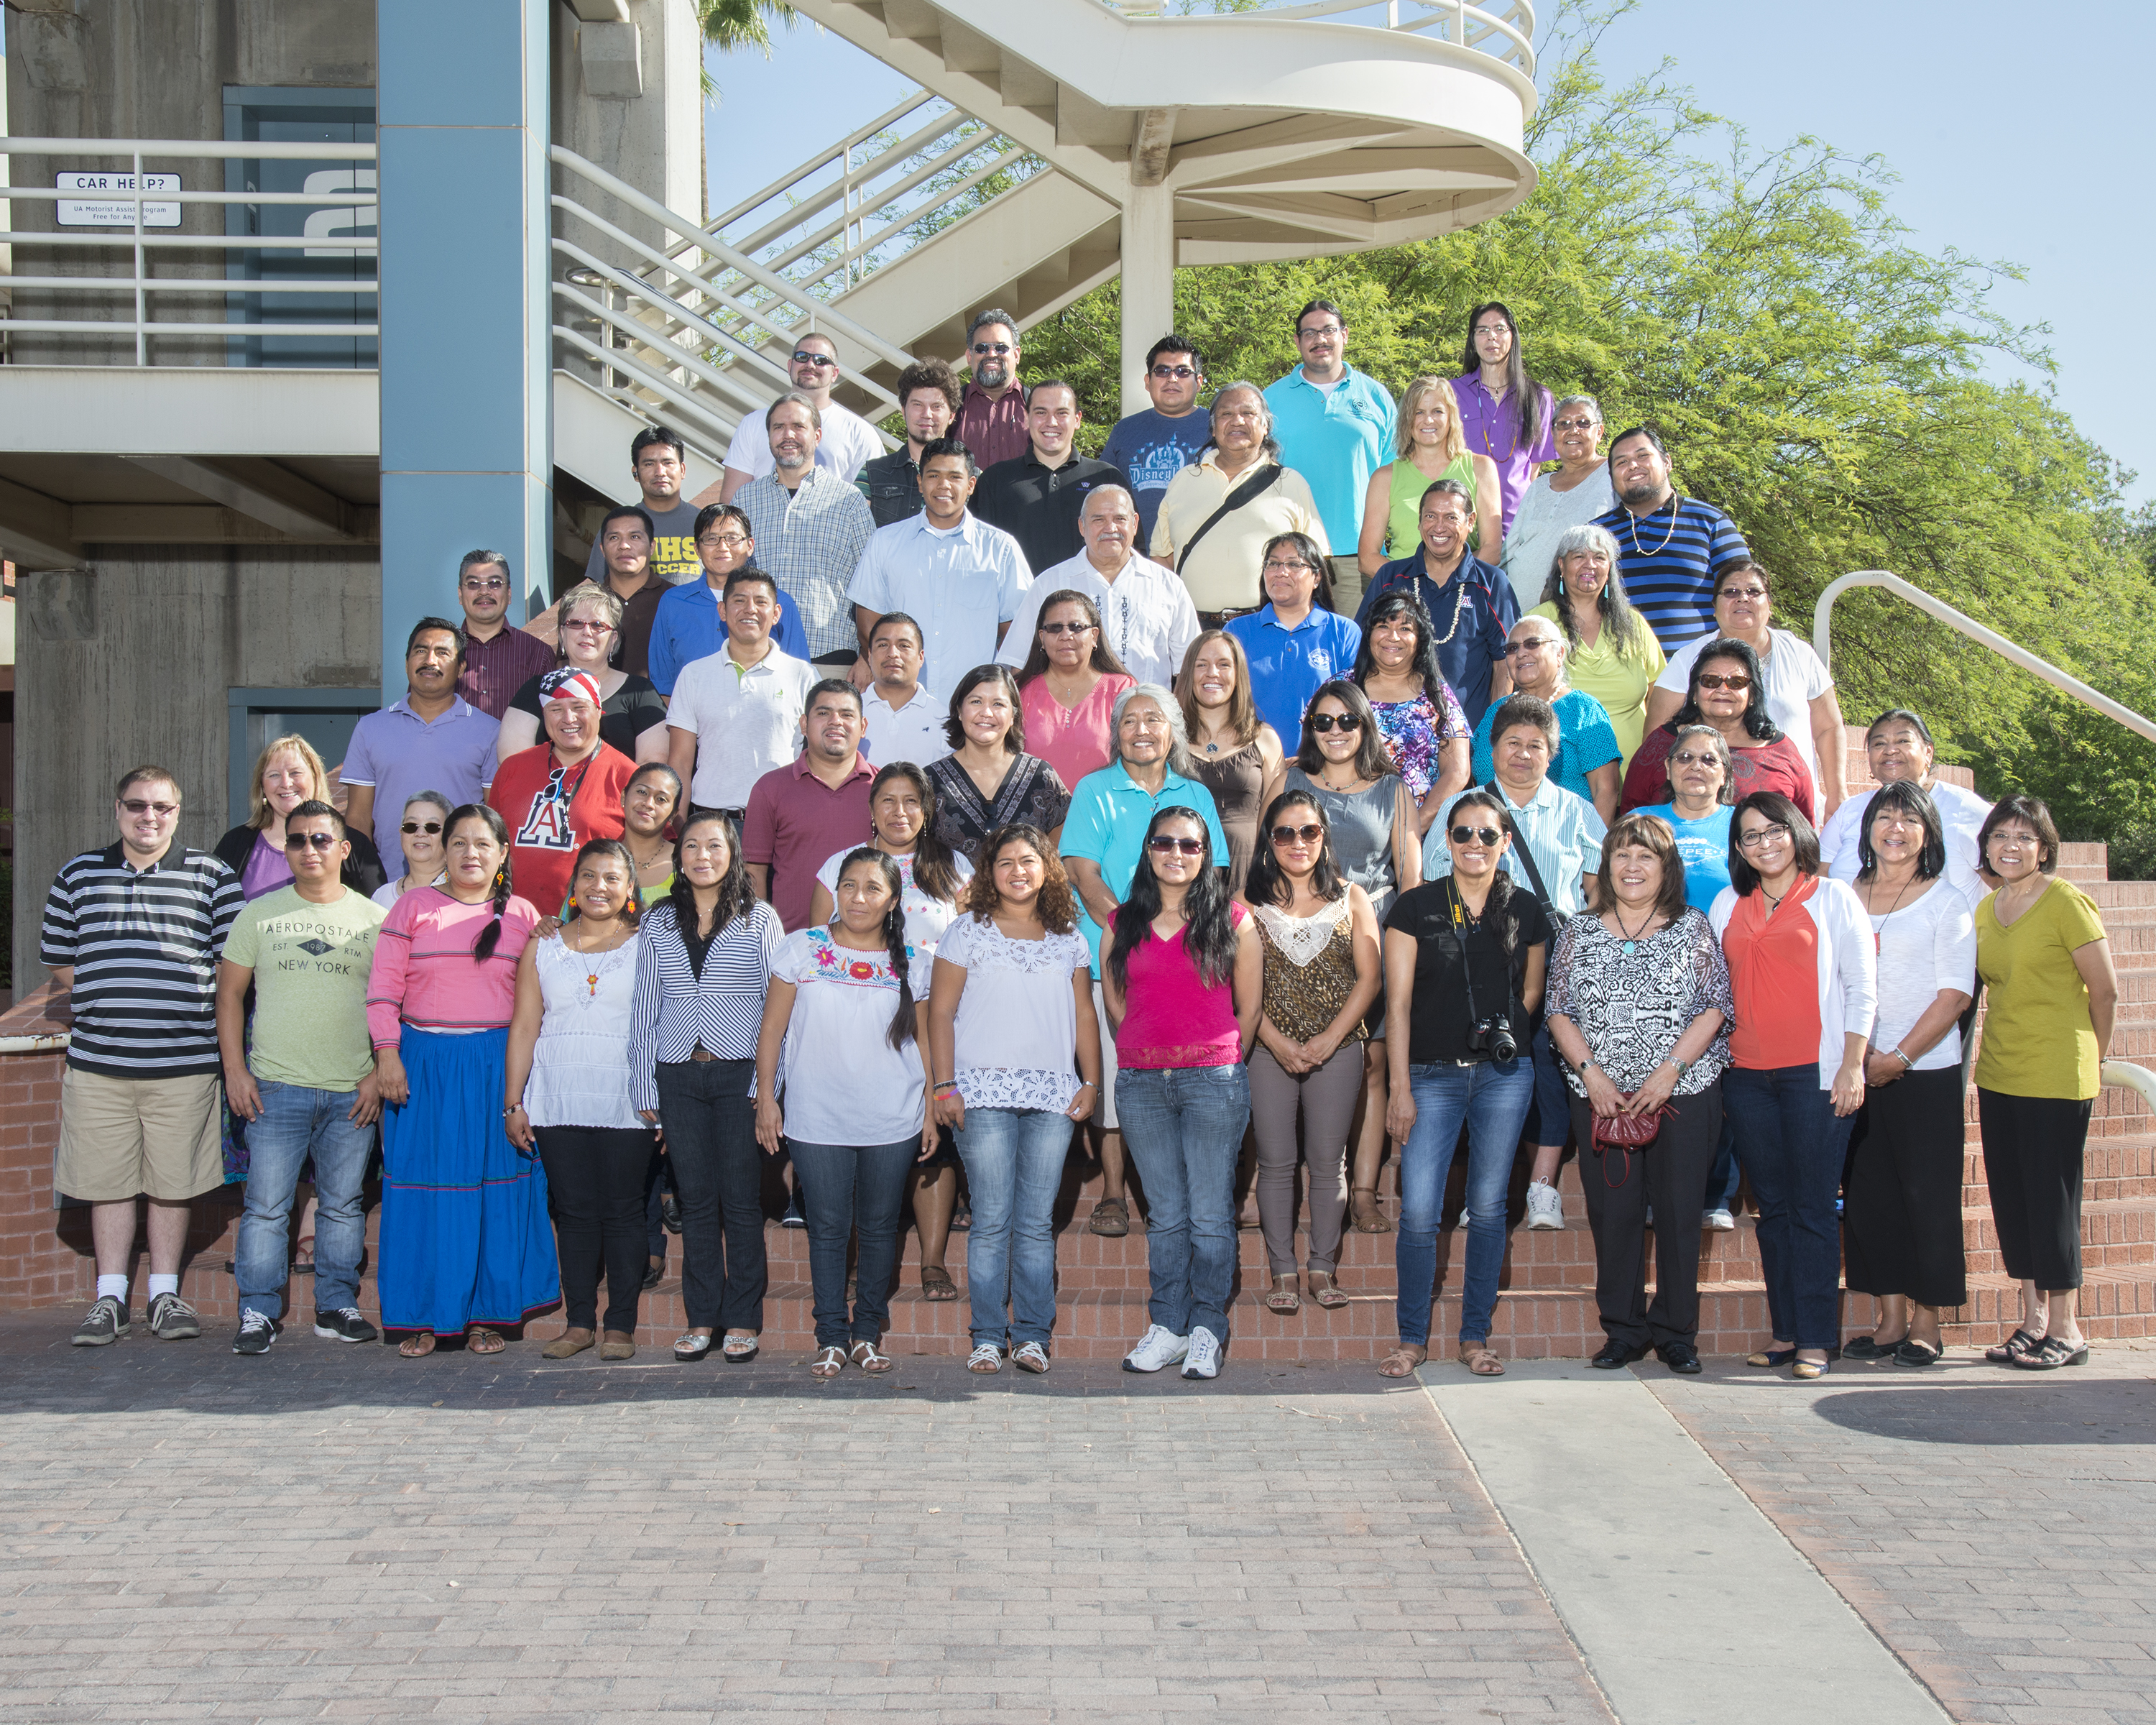 A photo of the University of Arizona's AILDI class of 2014